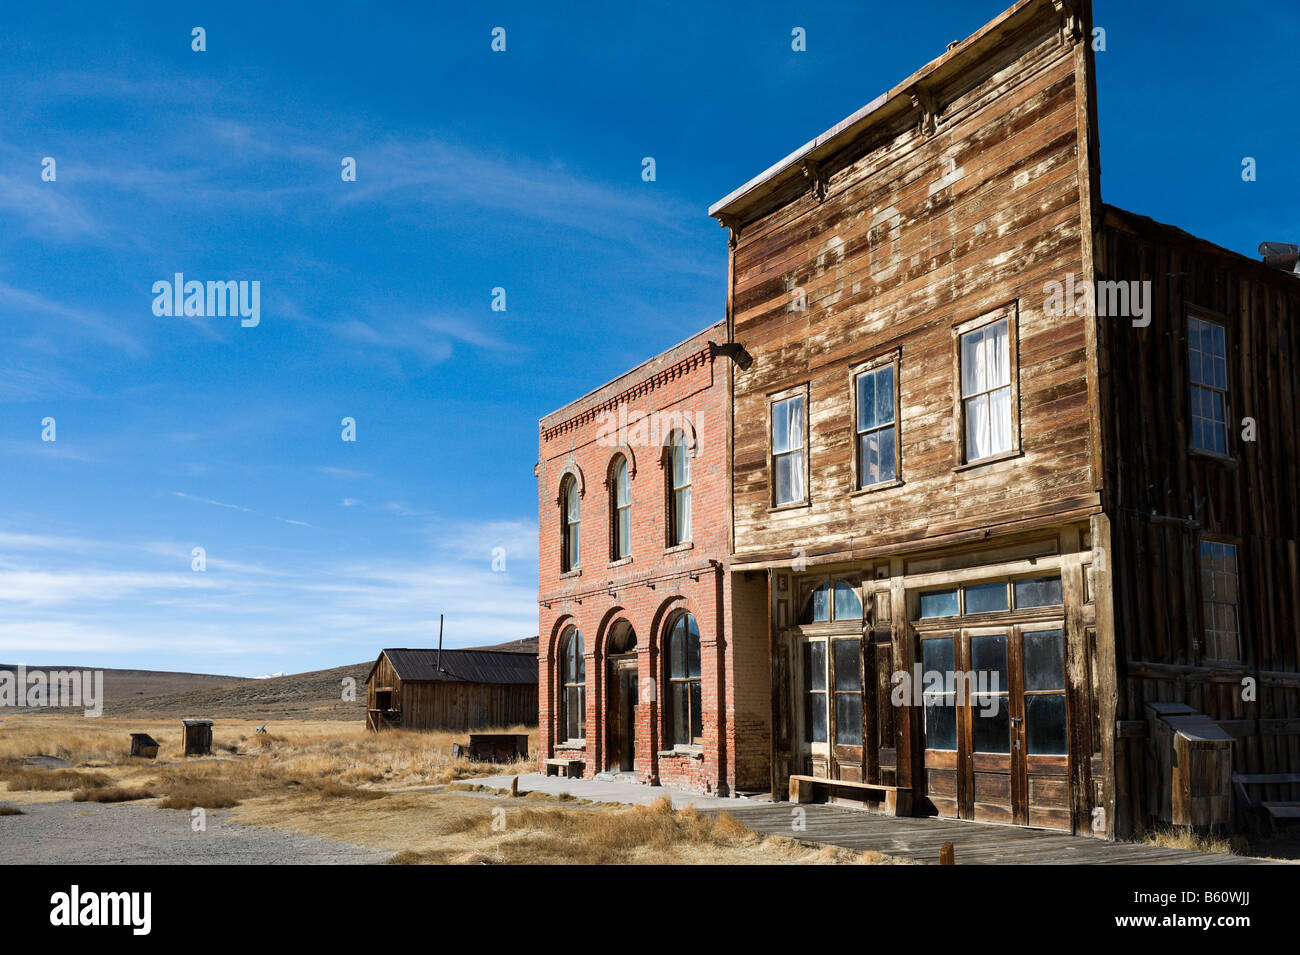 The Dechambeau Hotel & Post Office, Main Street, 19thC ghost town of Bodie, near Bridgepor,t Sierra Nevada Mountains, - Stock Image